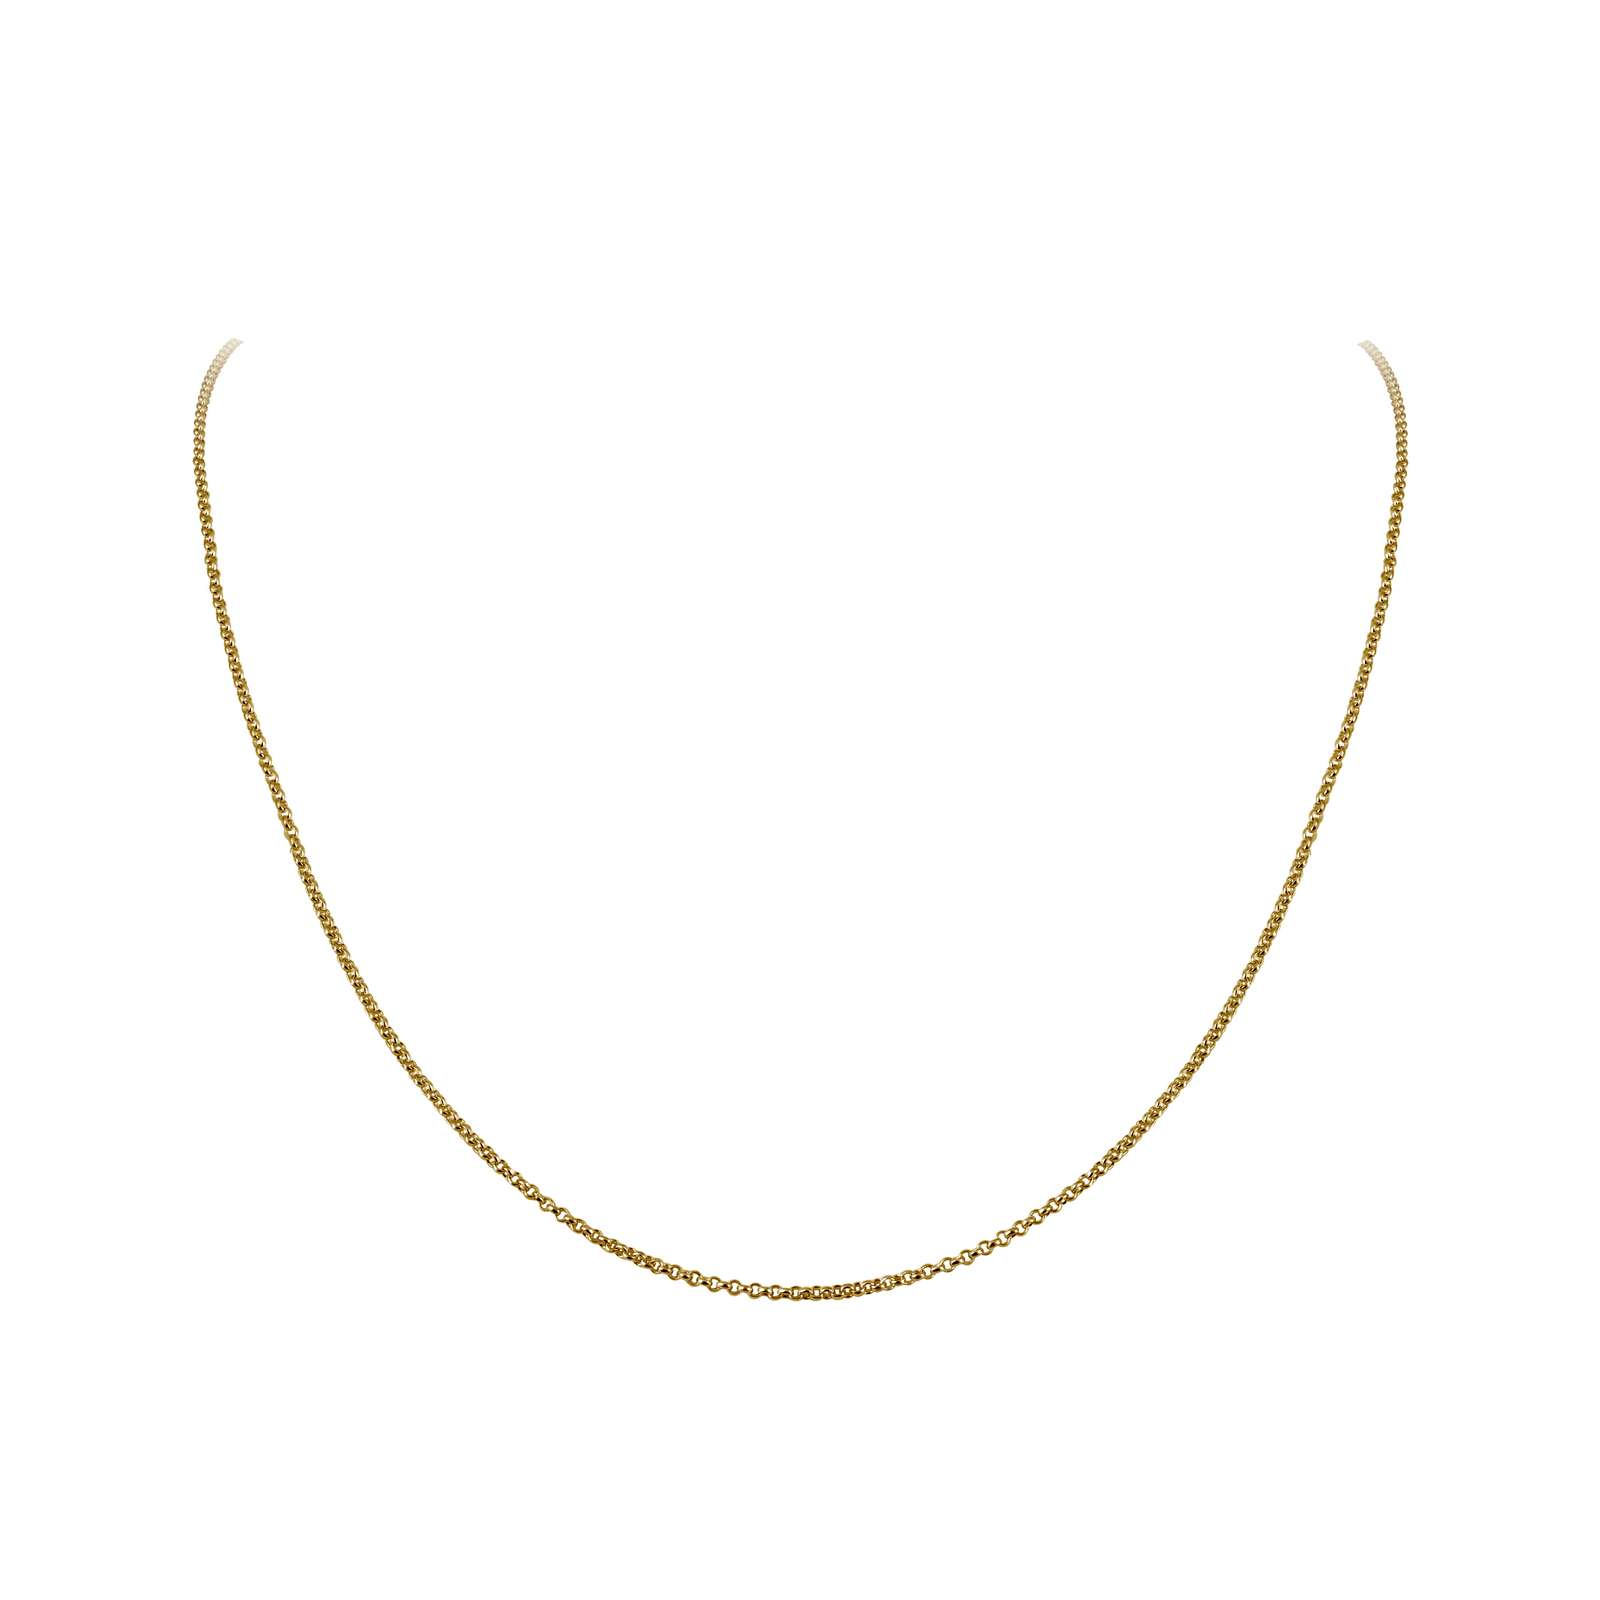 Classic No Stone Gold Chain - Simple and versatile. This Lafonn chain is in gold plated sterling silver.